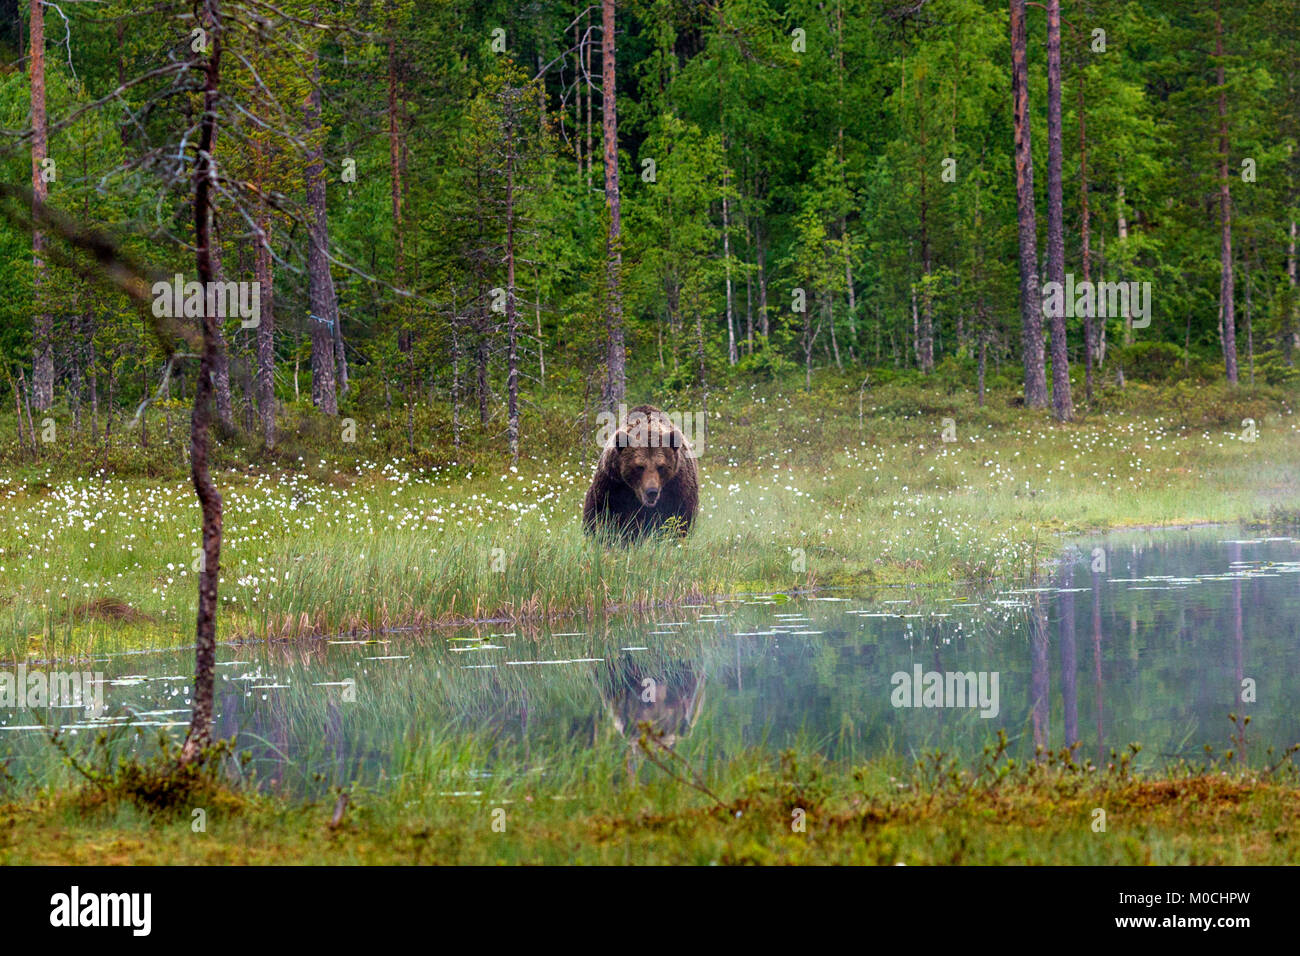 Wild brown bear in Finland. - Stock Image